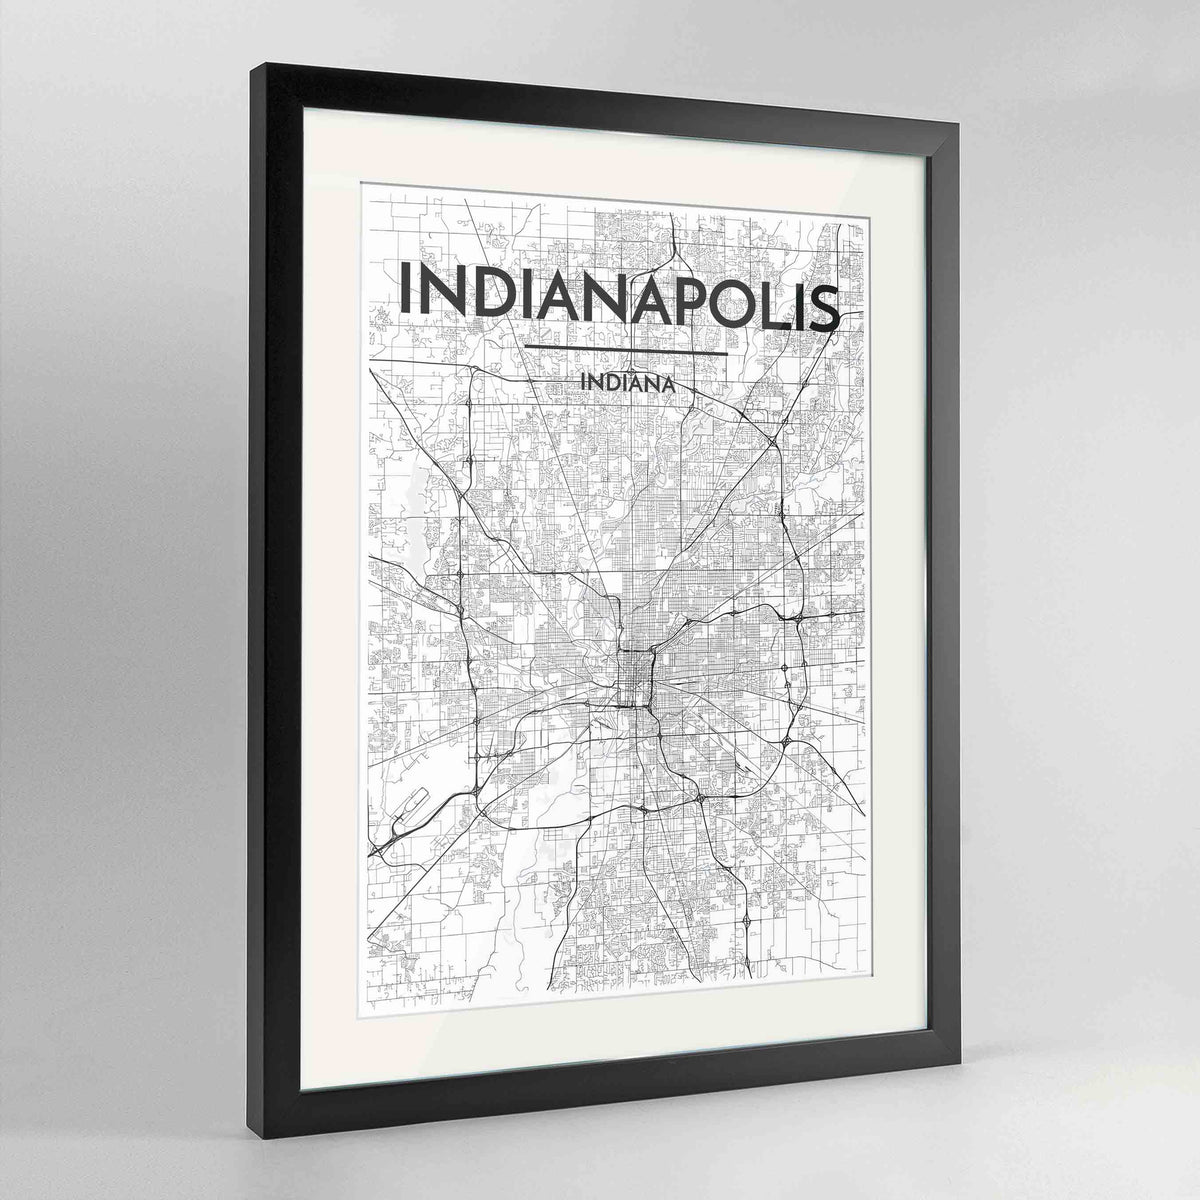 "Framed Indianapolis Map Art Print 24x36"" Contemporary Black frame Point Two Design Group"